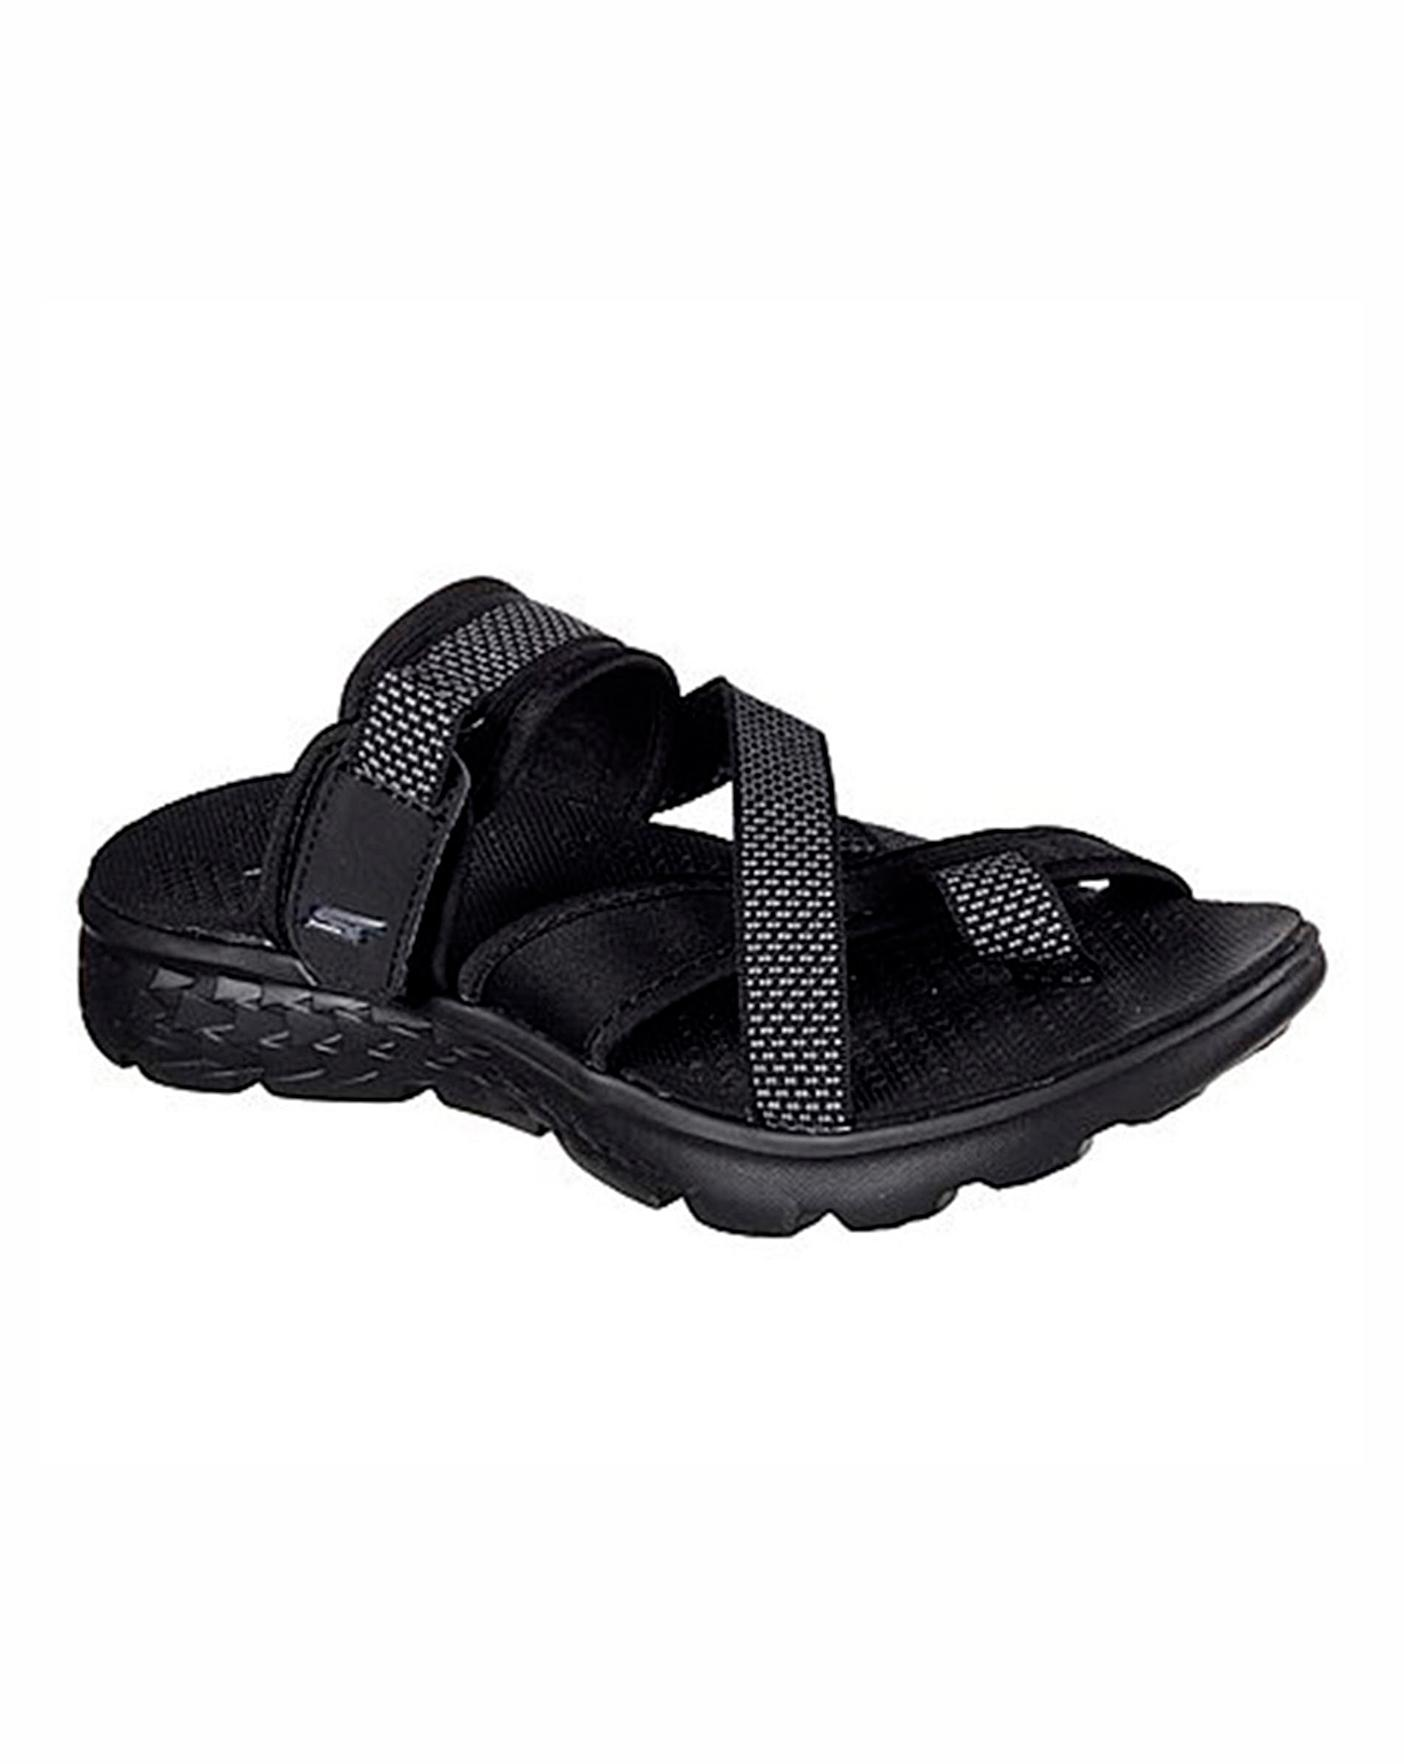 Skechers On the GO 400 – Discover Flip Flop, 10 40